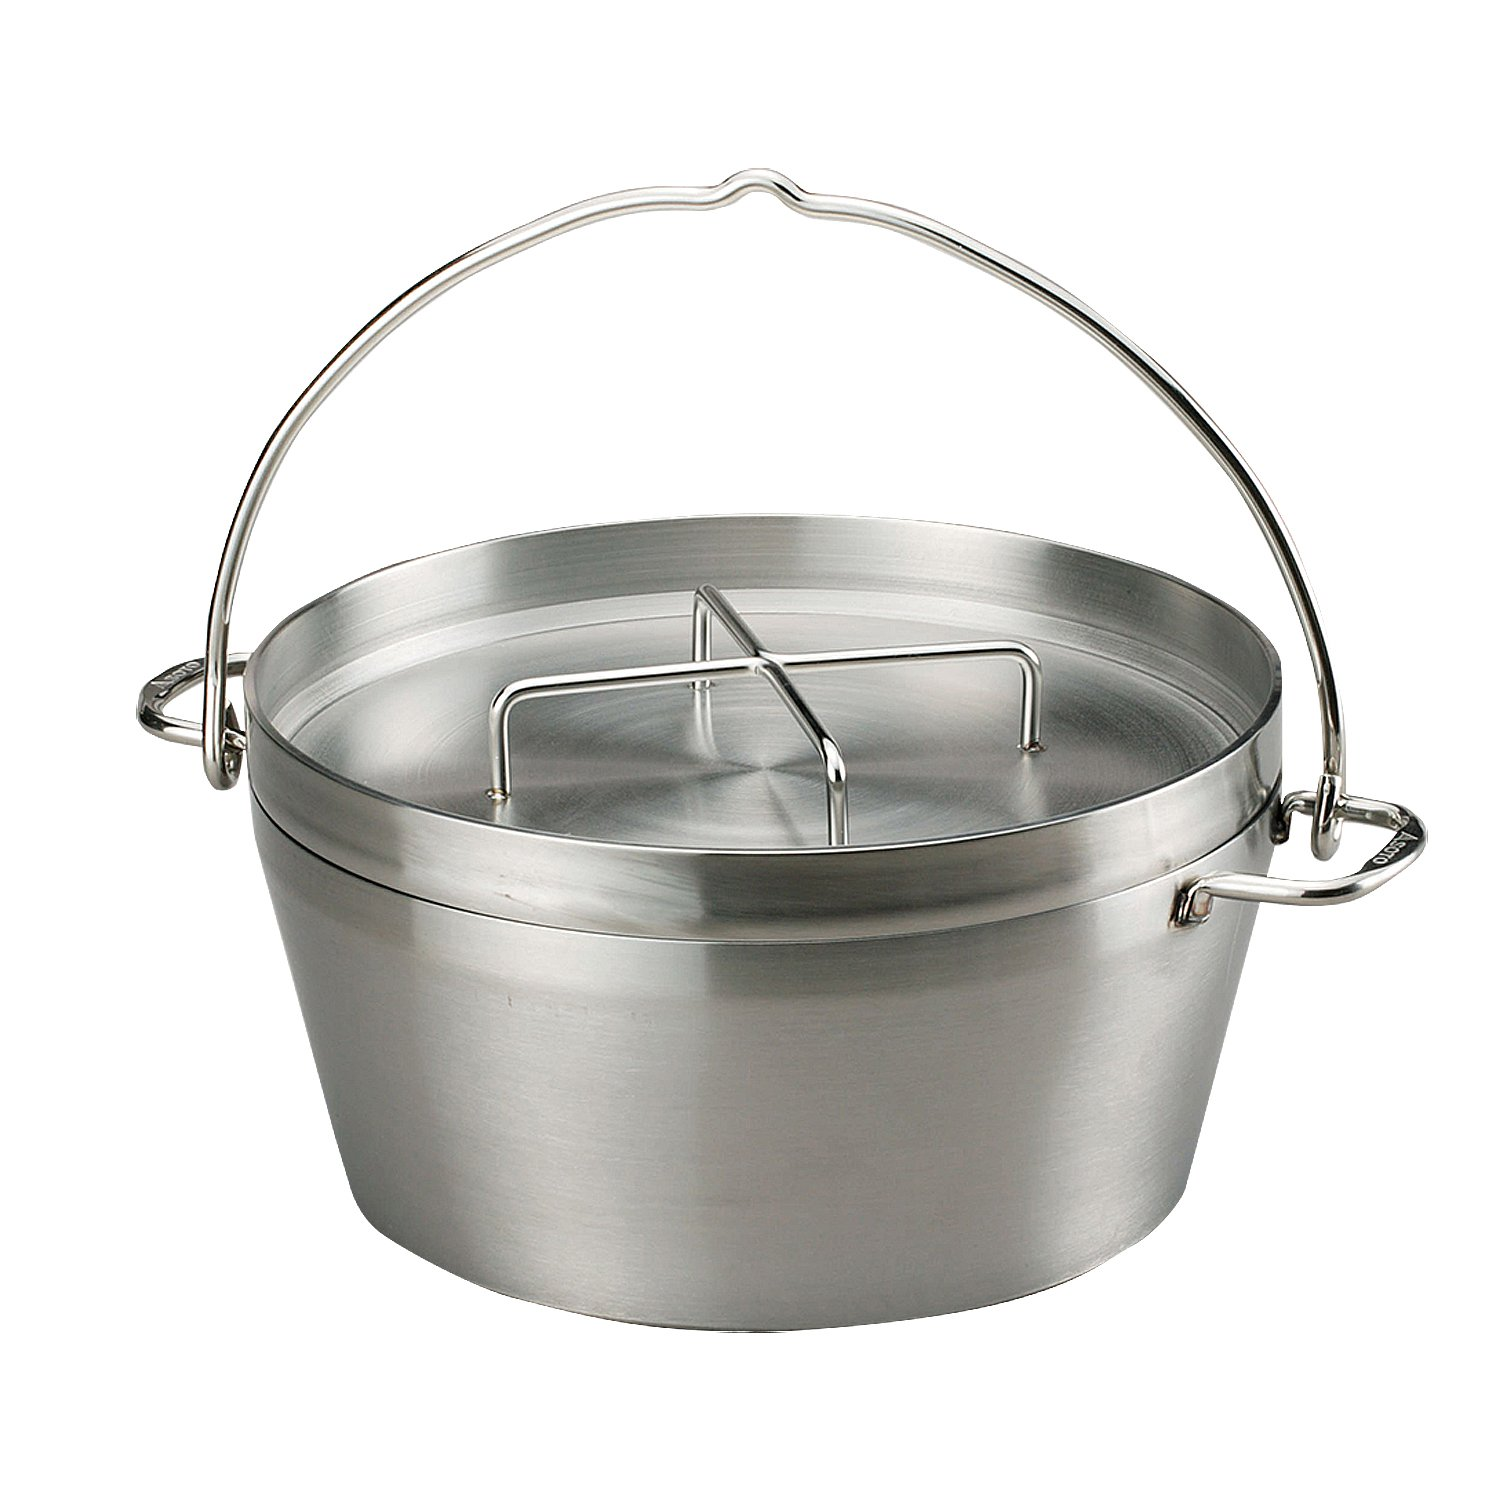 G-tough Edelstahl Dutch Oven 30,5 cm